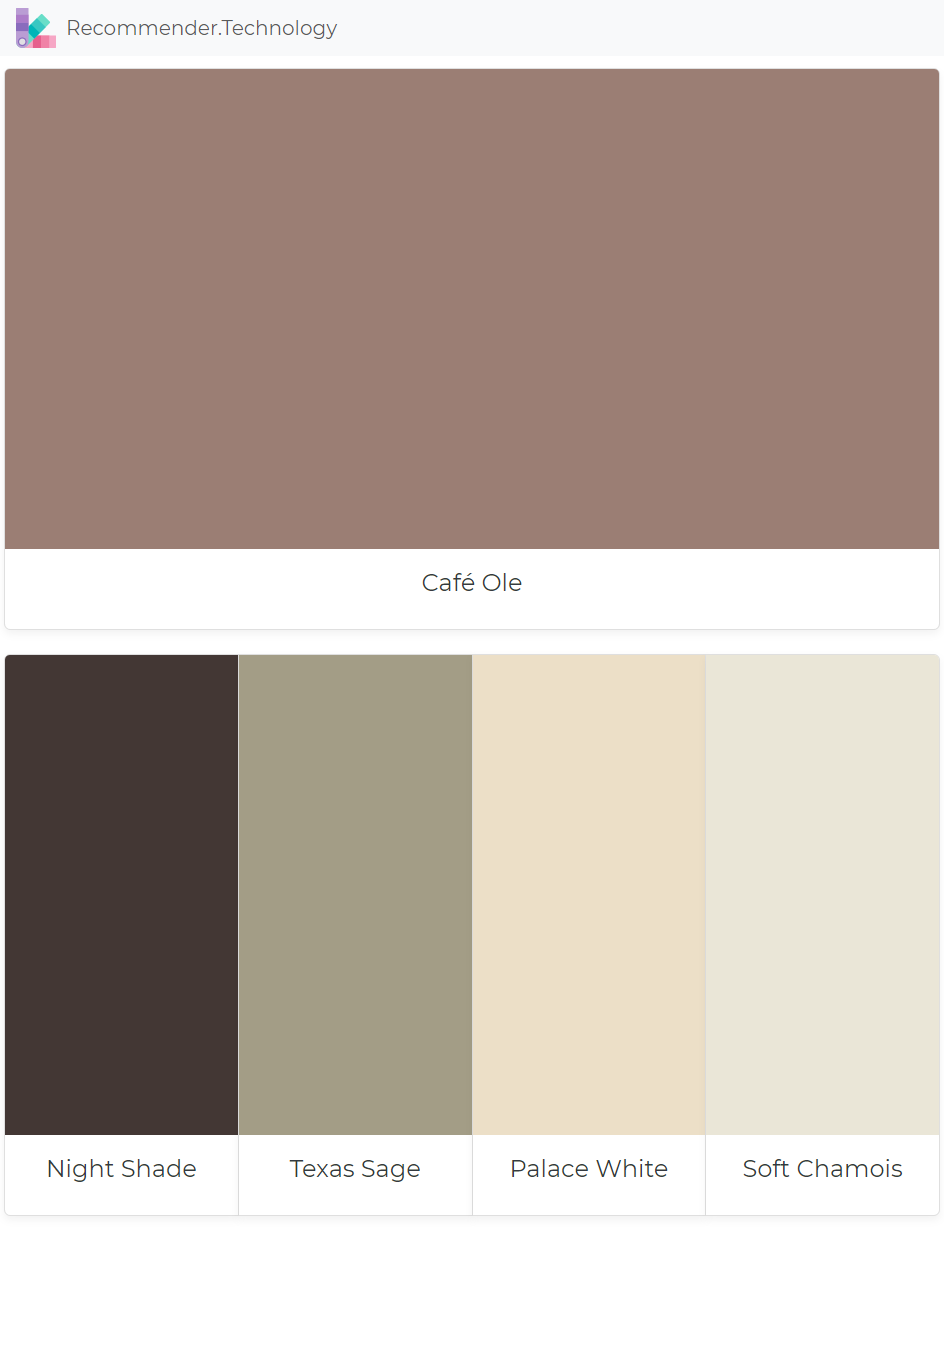 Café Ole Night Shade Texas Sage Palace White Soft Chamois Paint Color